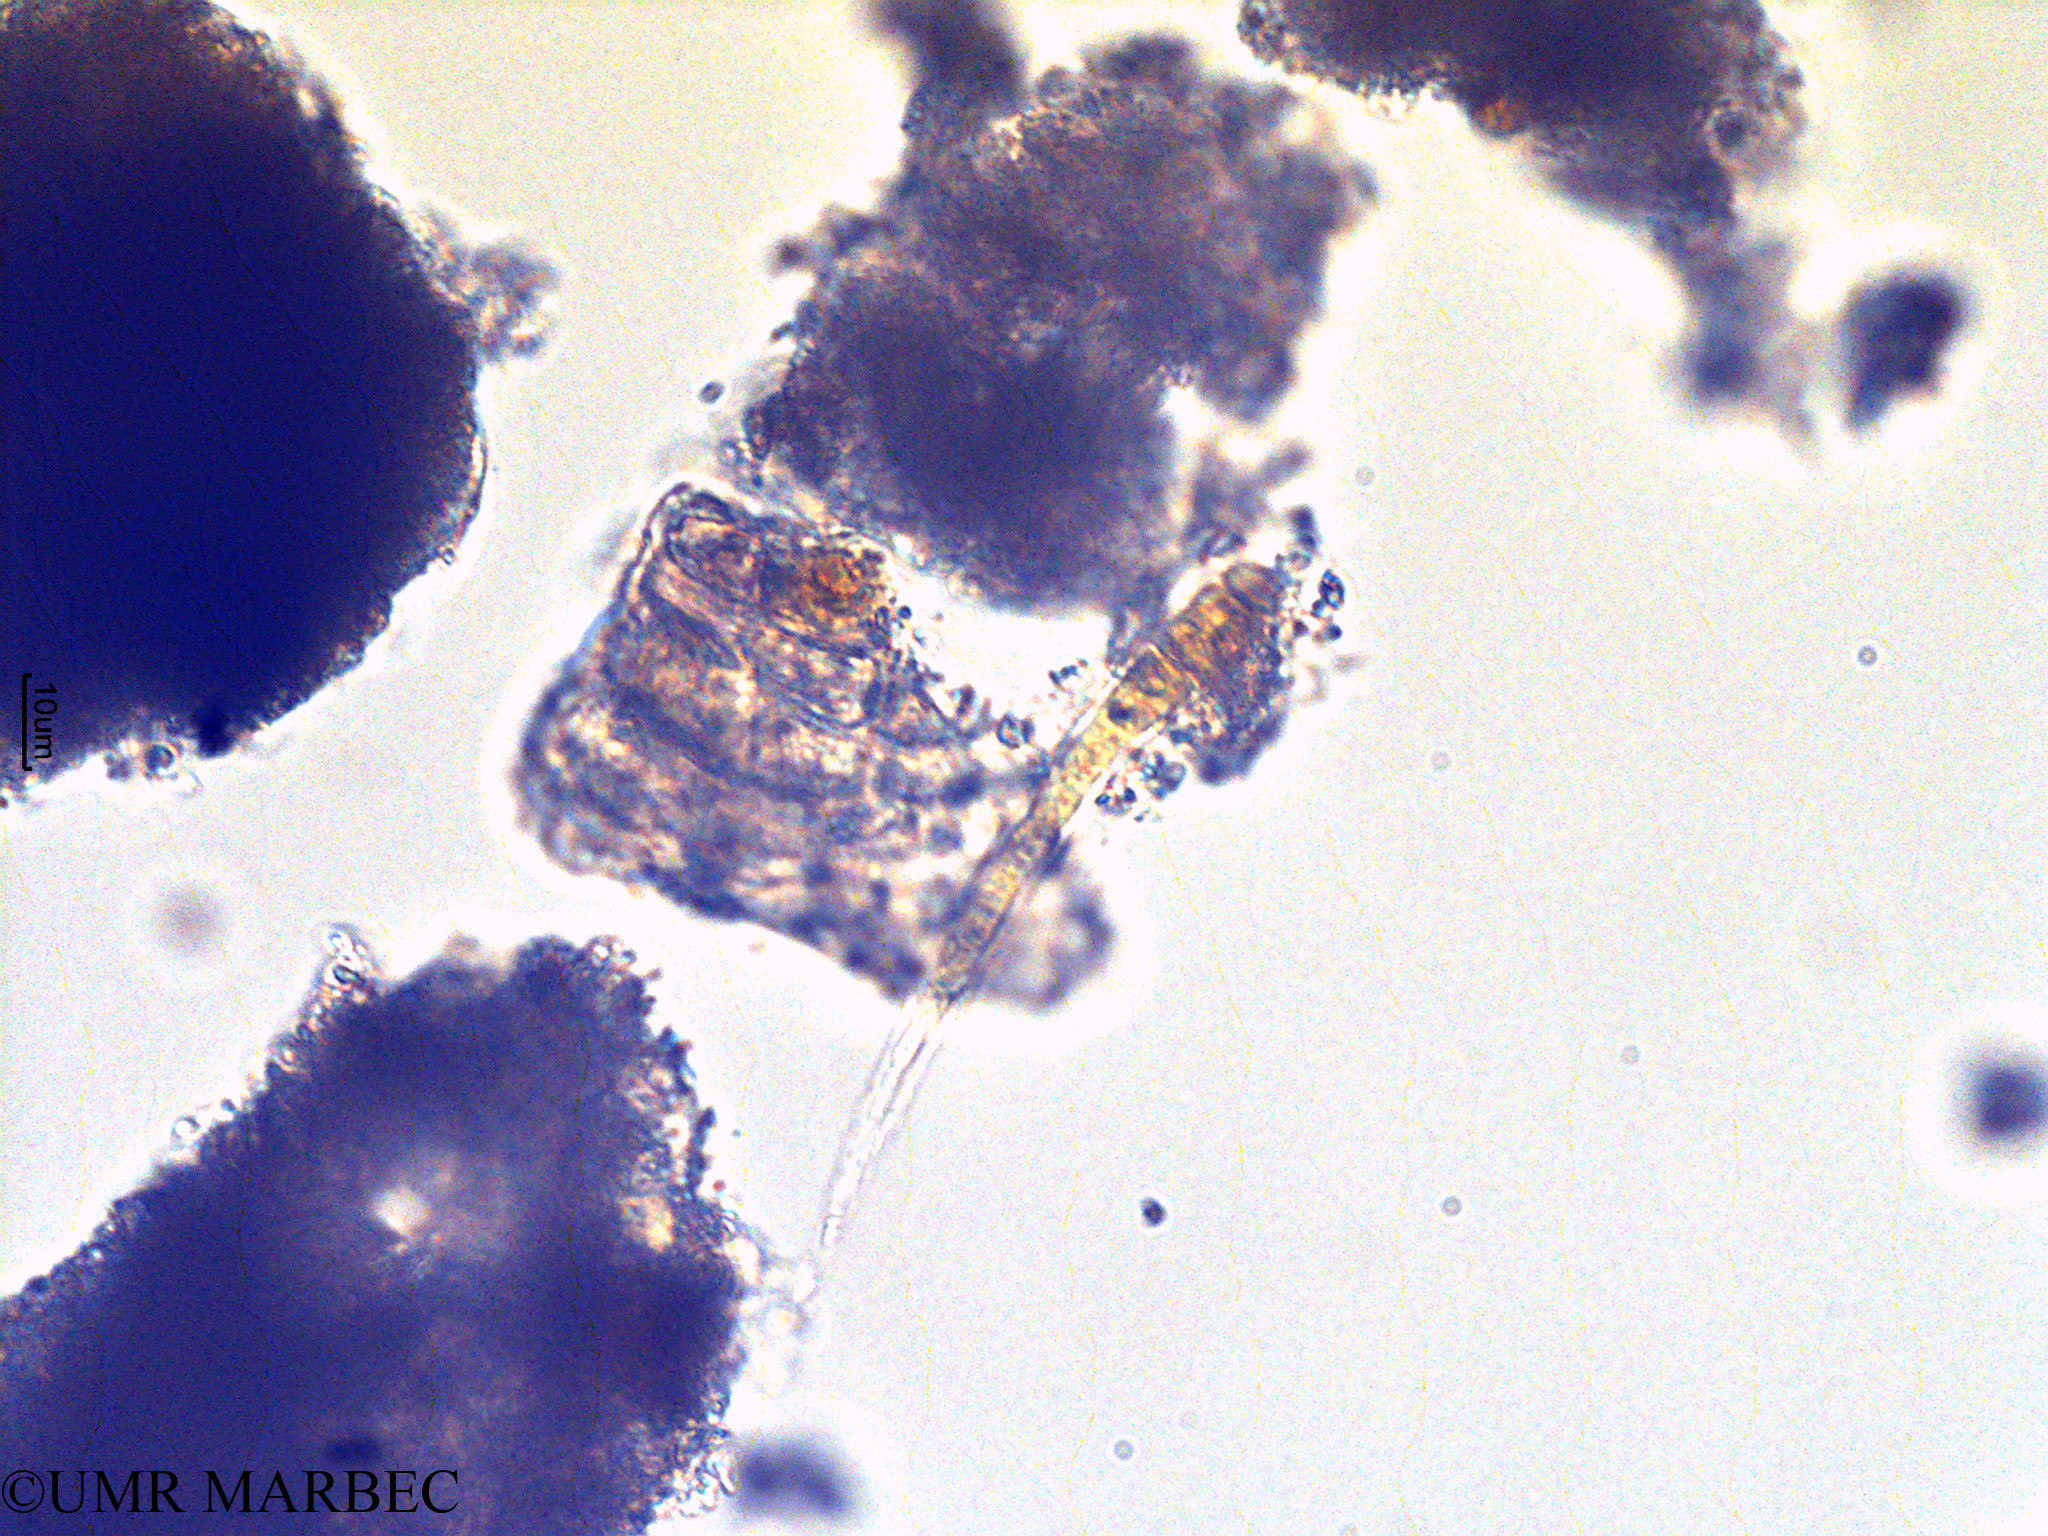 phyto/Scattered_Islands/europa/COMMA April 2011/Planktothrix sp (4.tif)(copy).jpg